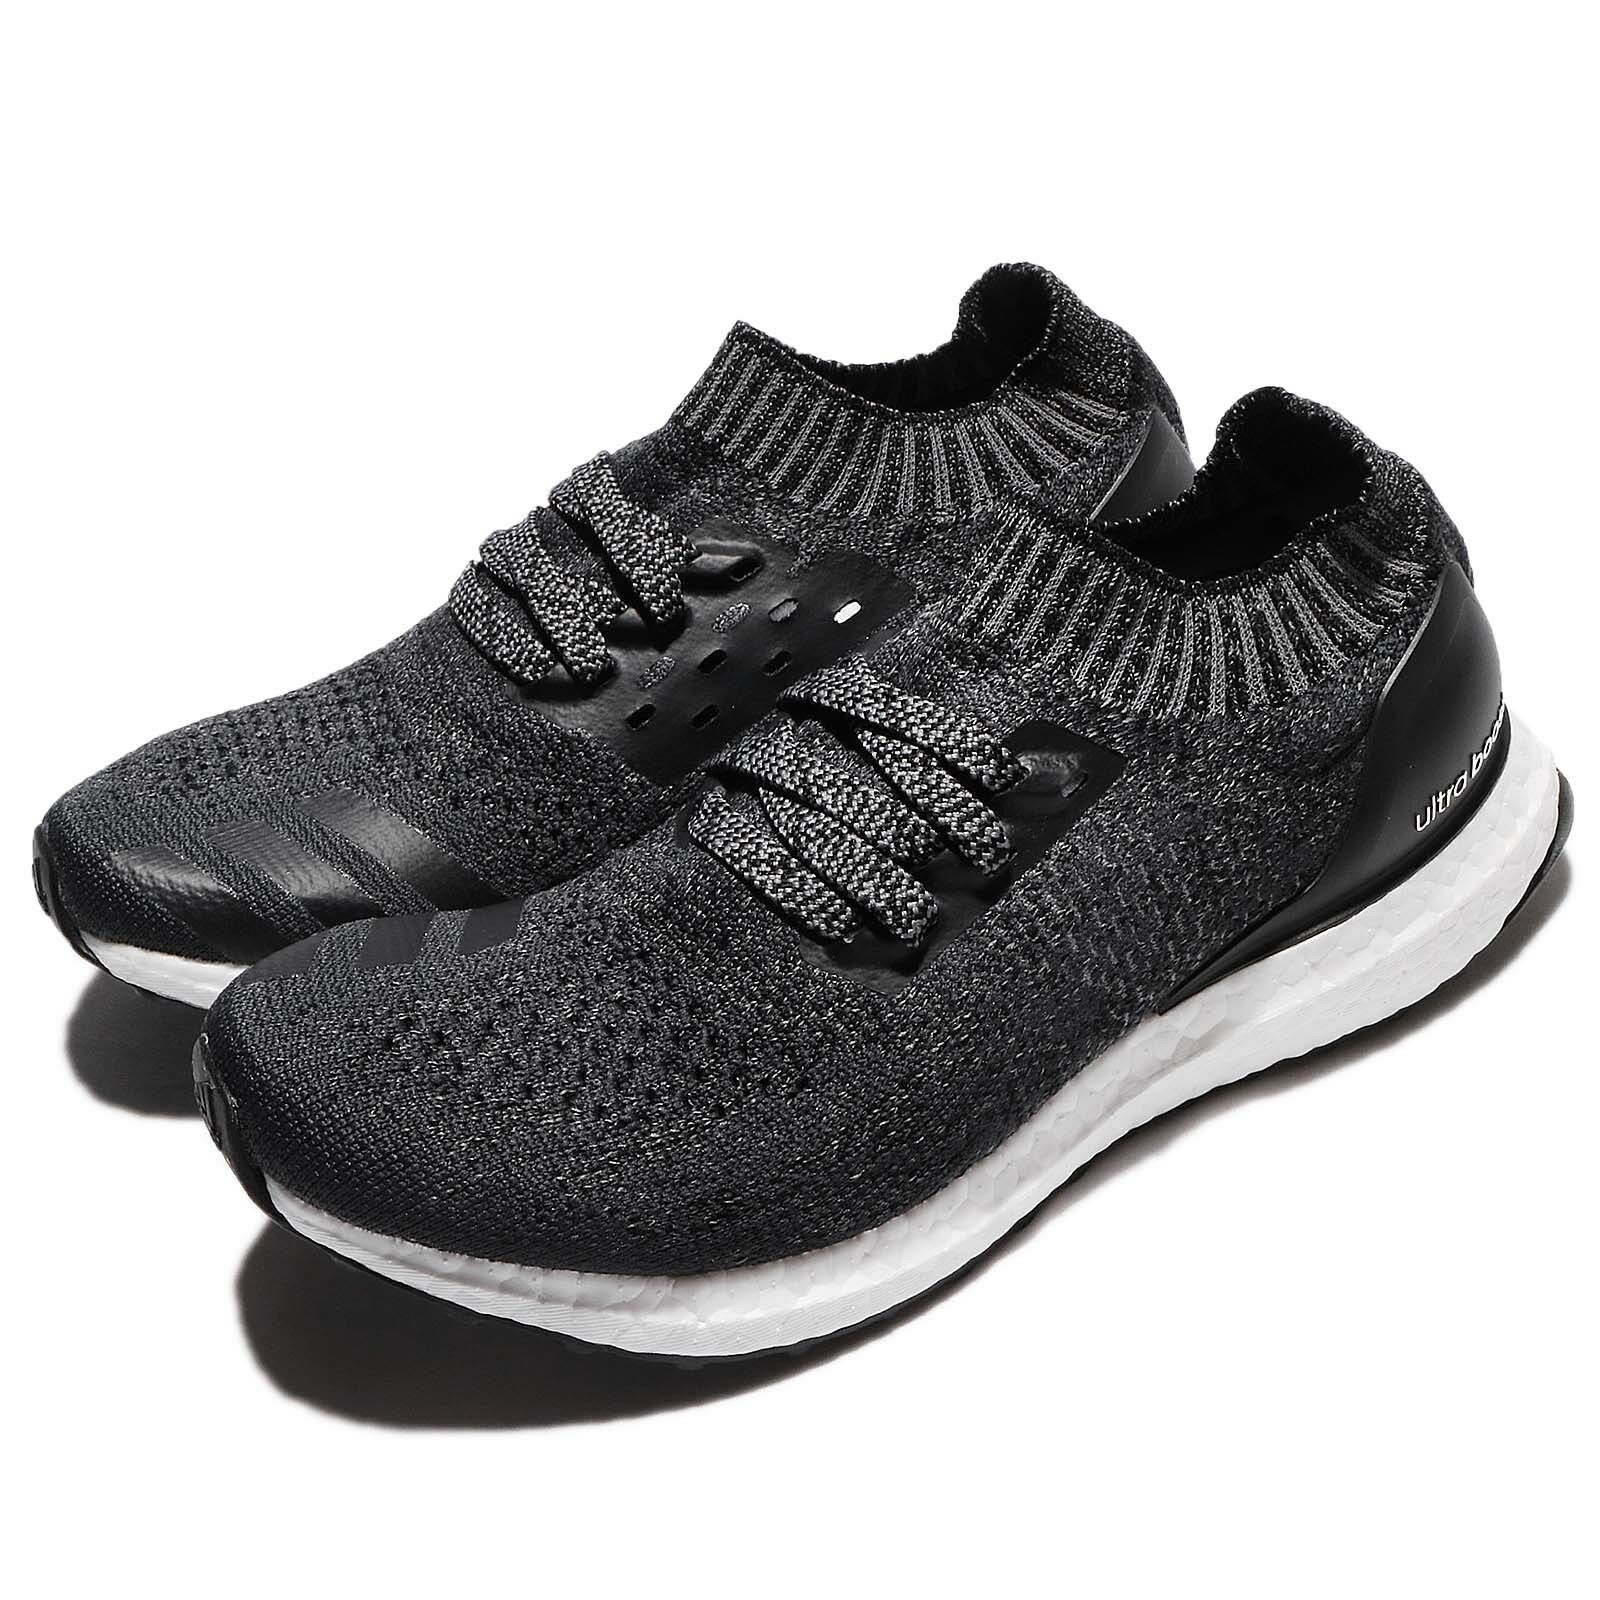 Adidas UltraBOOST Uncaged W Carbon Carbon Carbon Black Grey Women Running shoes Sneaker DB1133 2828a2